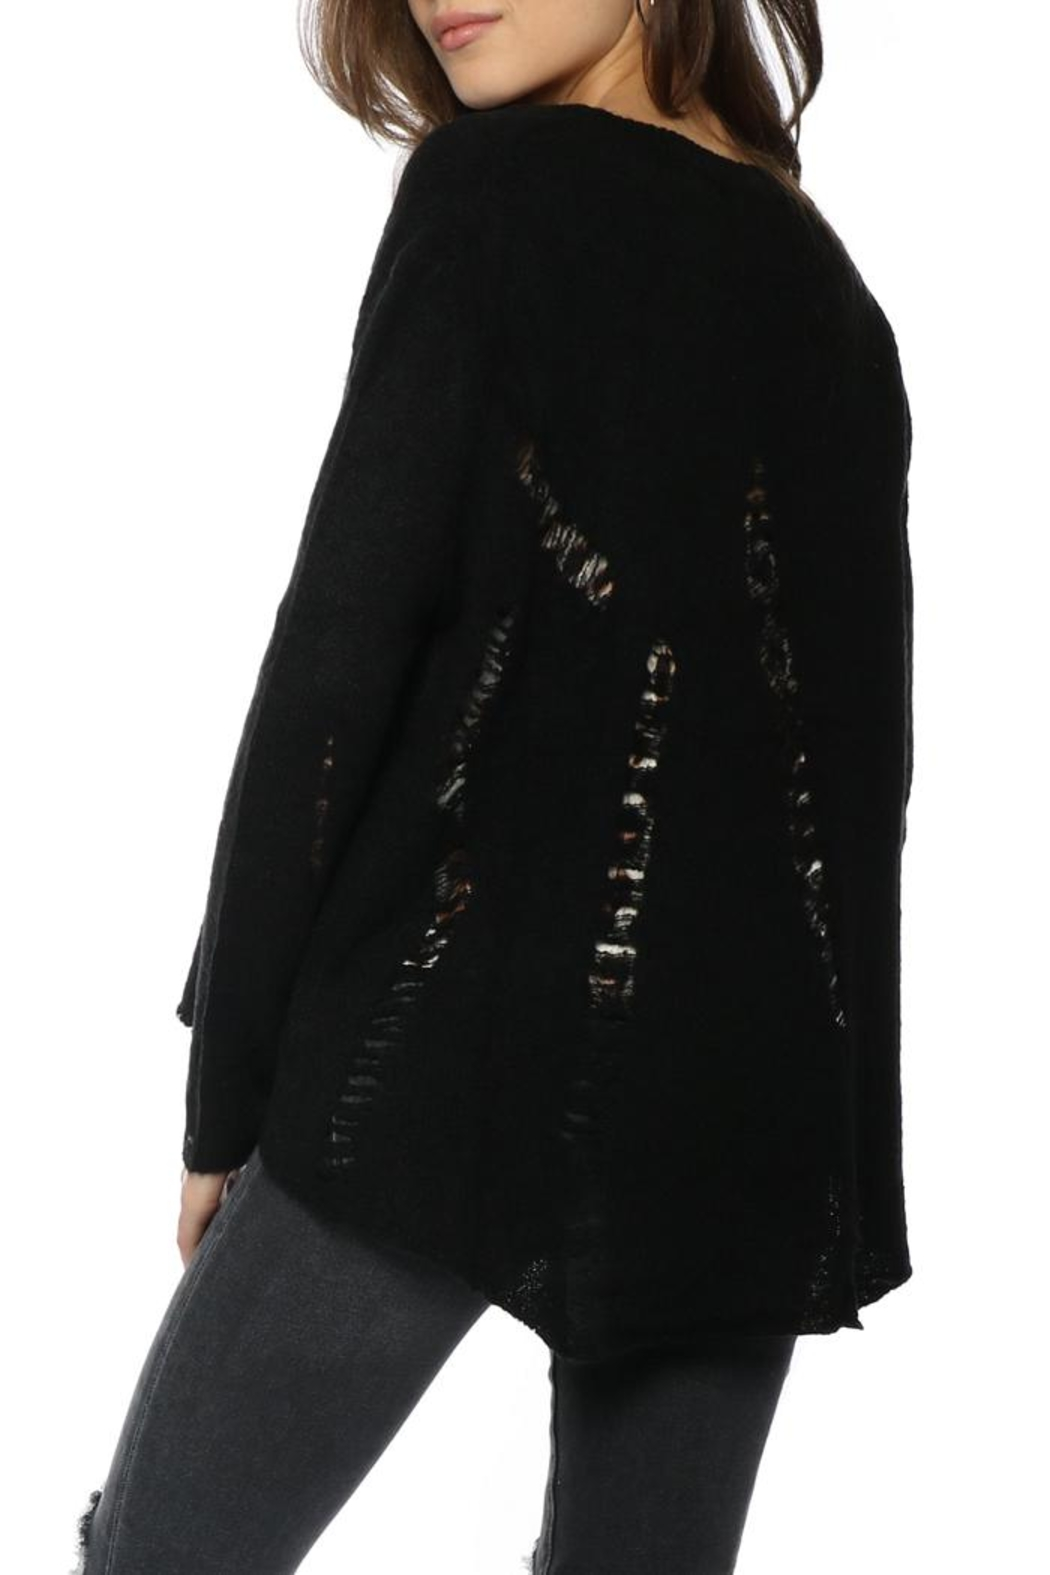 Olivaceous Distressed Hilo Sweater - Front Full Image